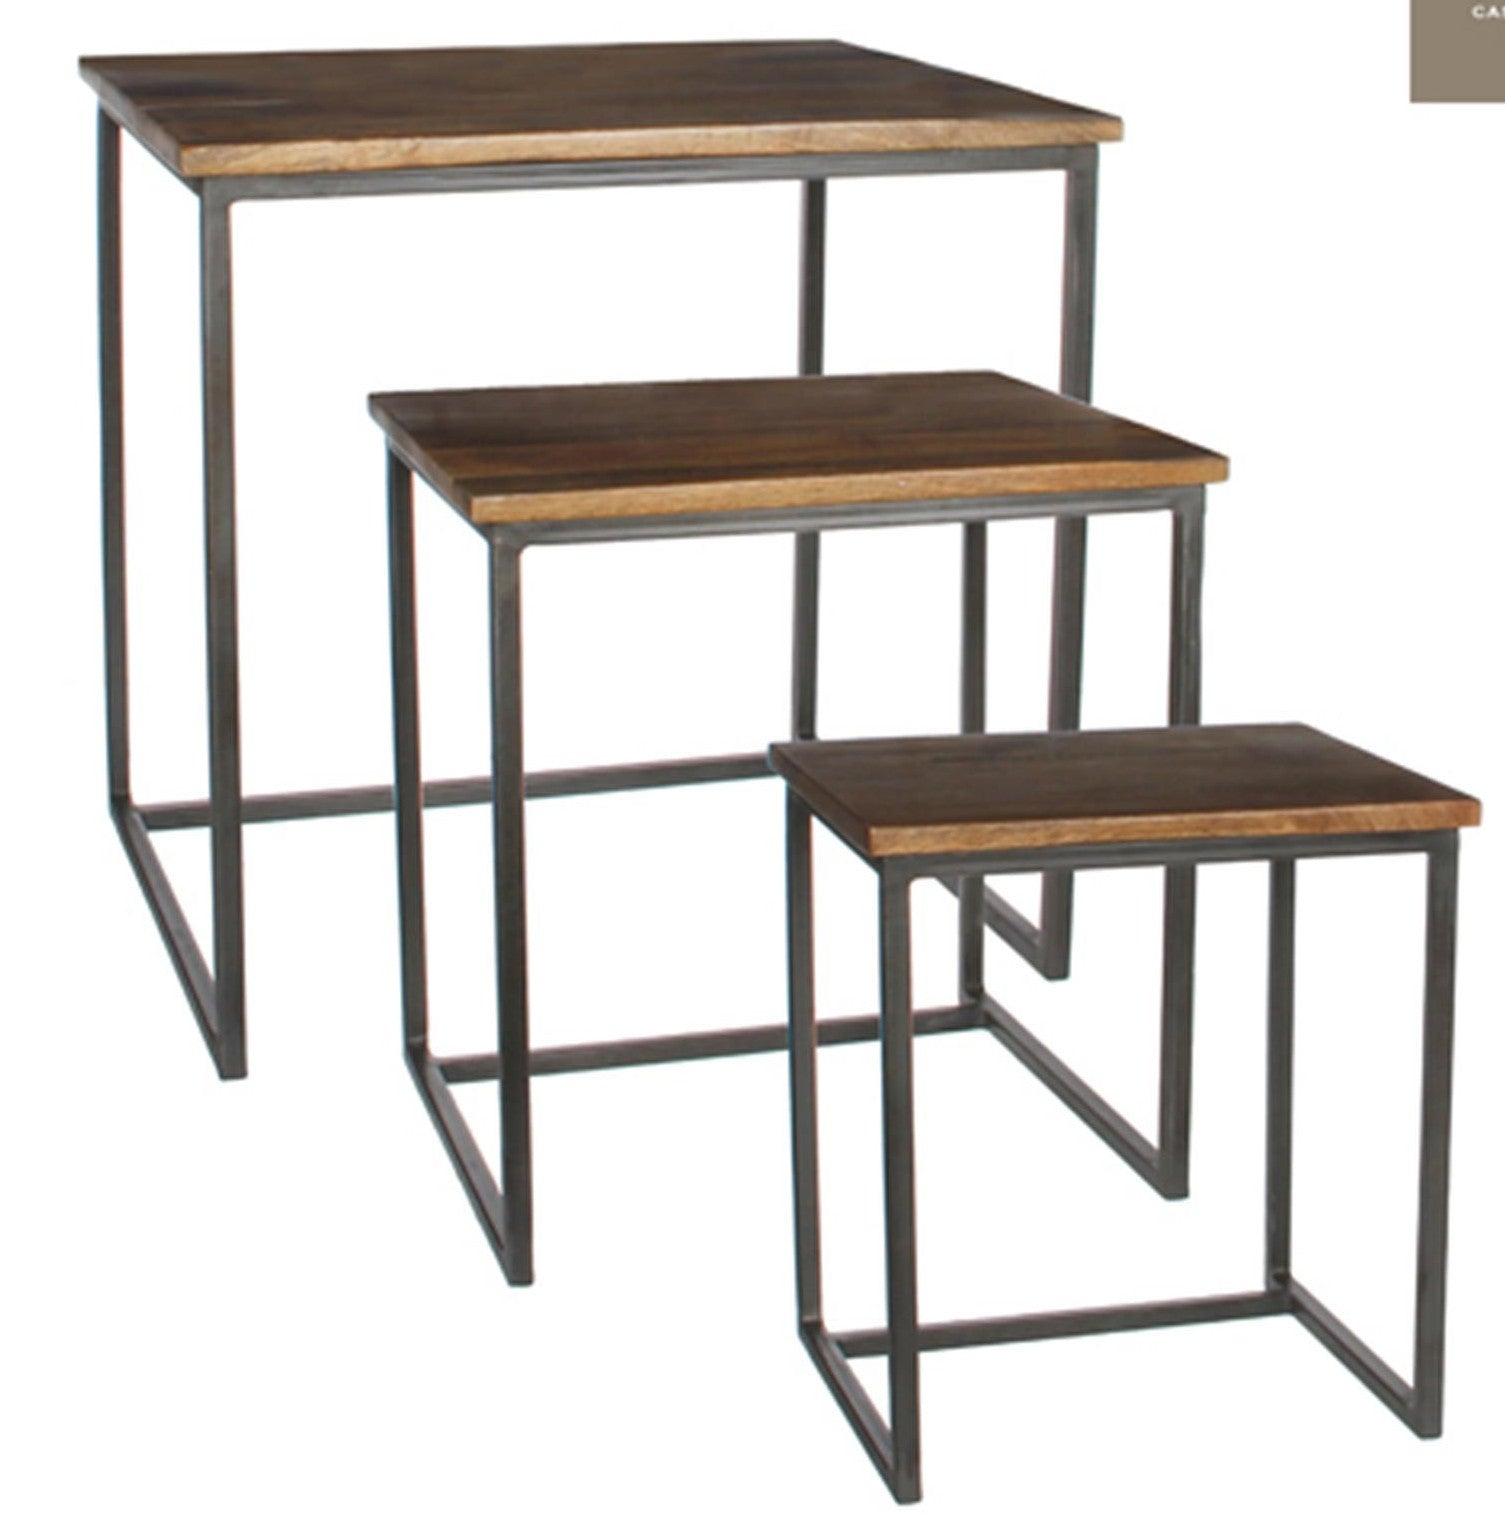 Harvey Stacking Side Table (Set of 3)  sc 1 st  The Muskokery & Harvey Stacking Side Table (Set of 3) | The Muskokery